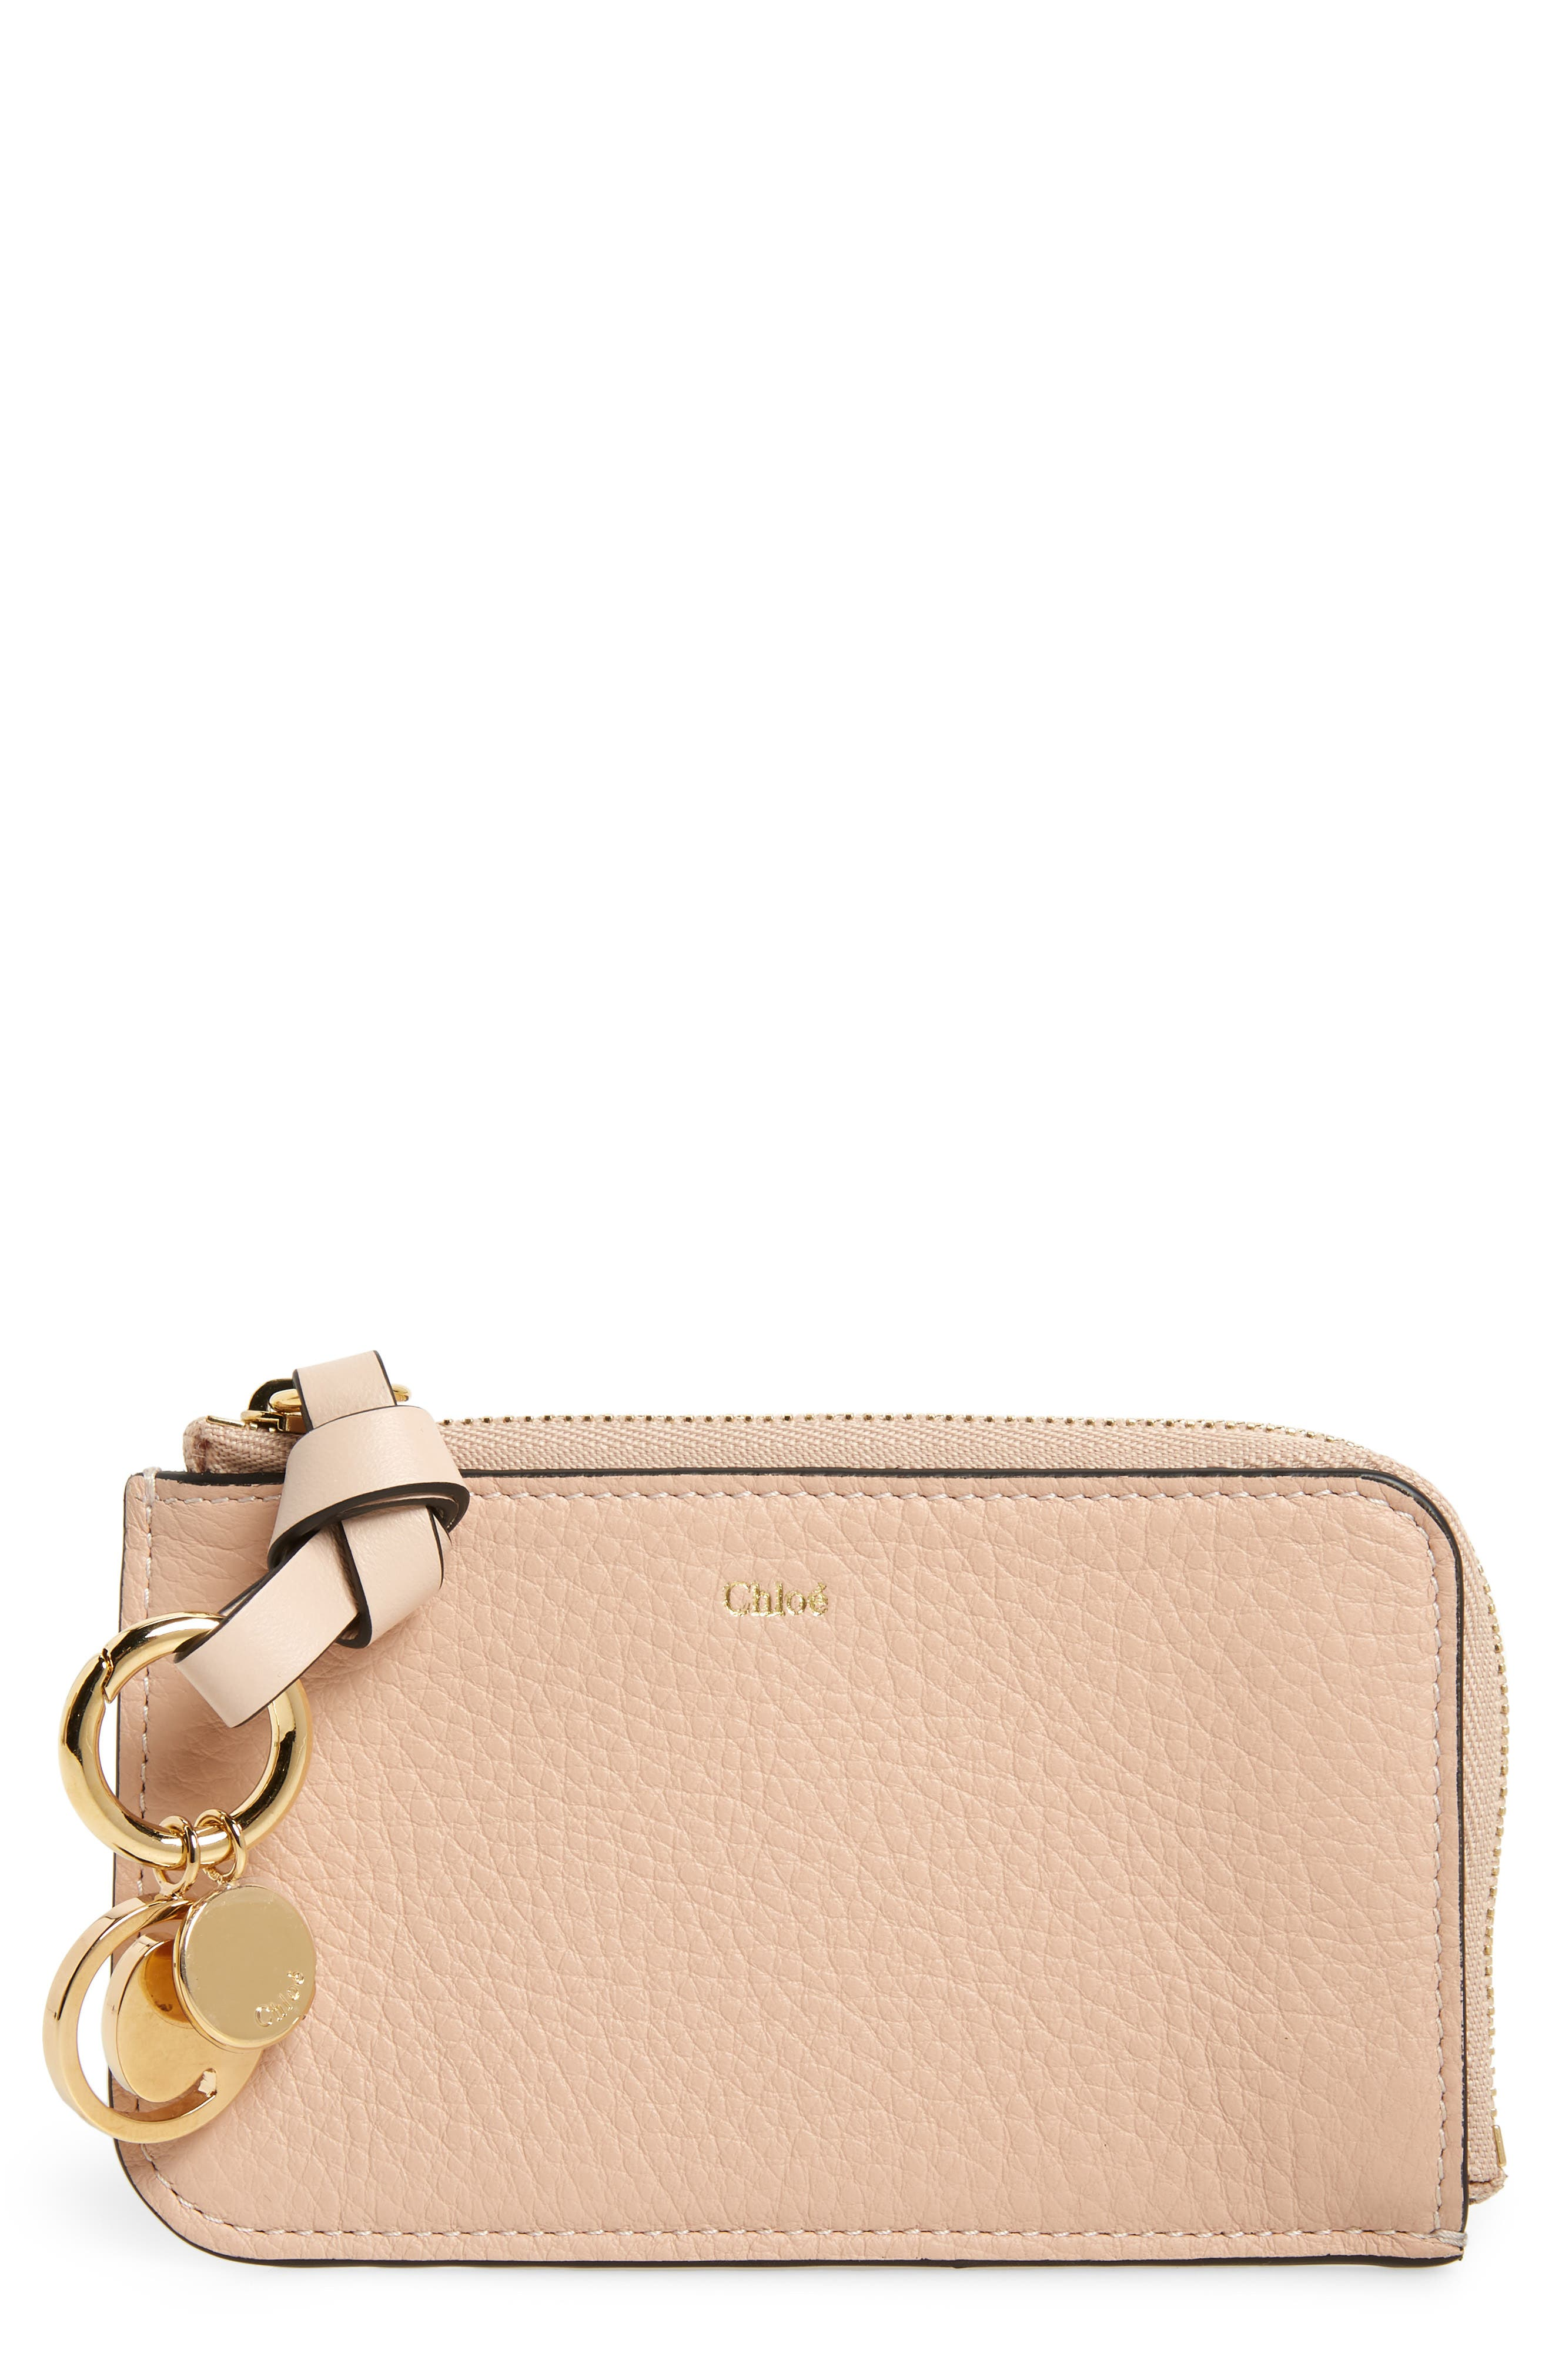 CHLOÉ, Alphabet Leather Card Holder, Main thumbnail 1, color, BLUSH NUDE